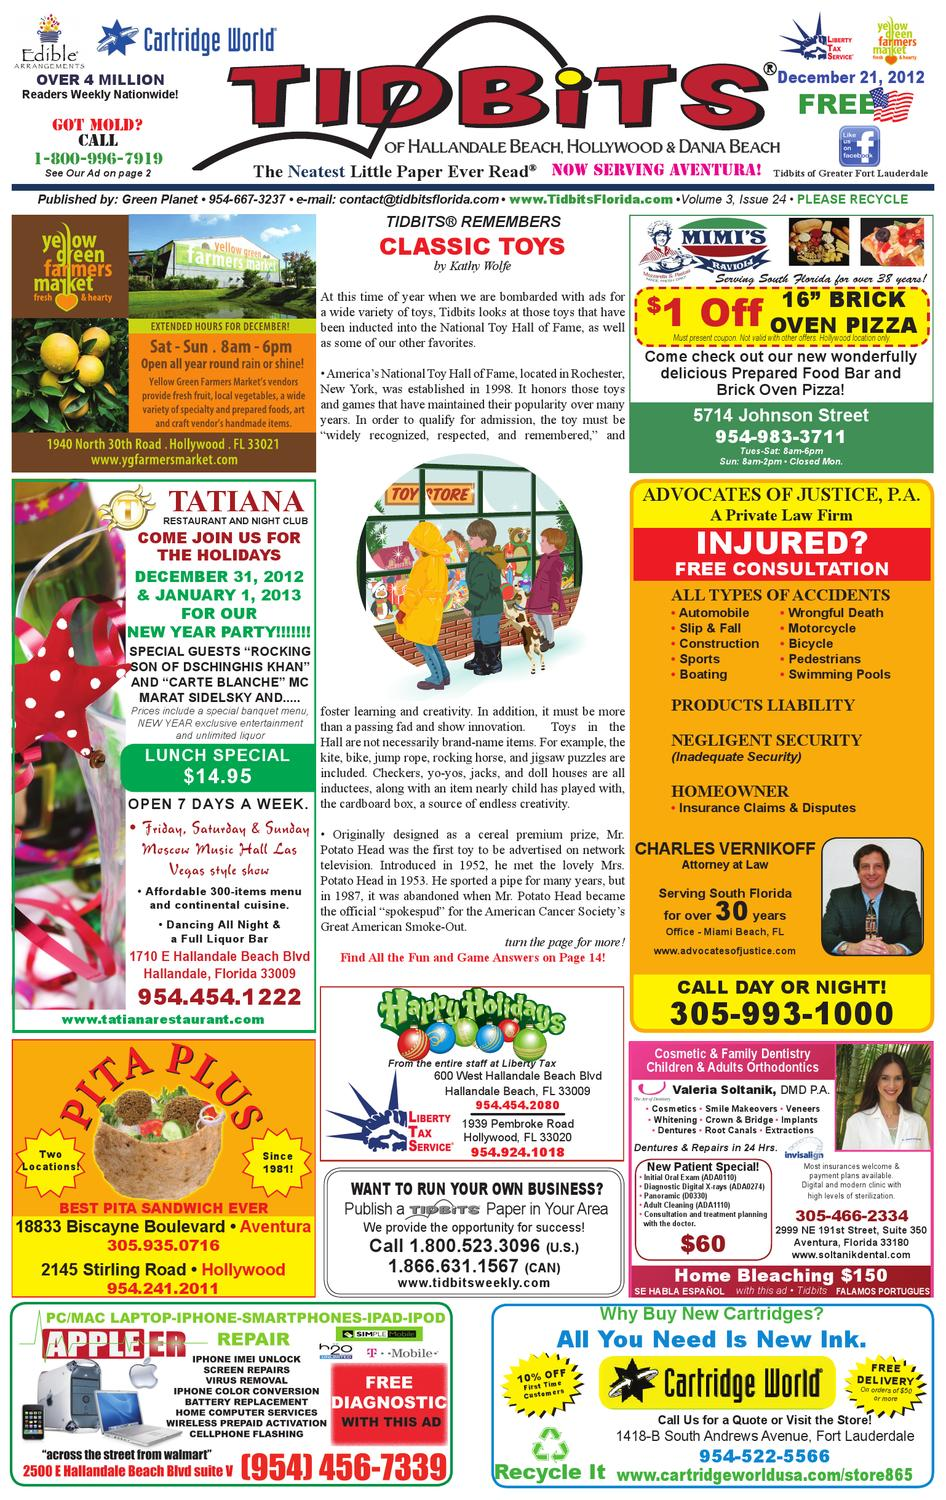 Carte Blanche Cartridges Tidbits Of Greater Ft Lauderdale Vol 3 Issue 24